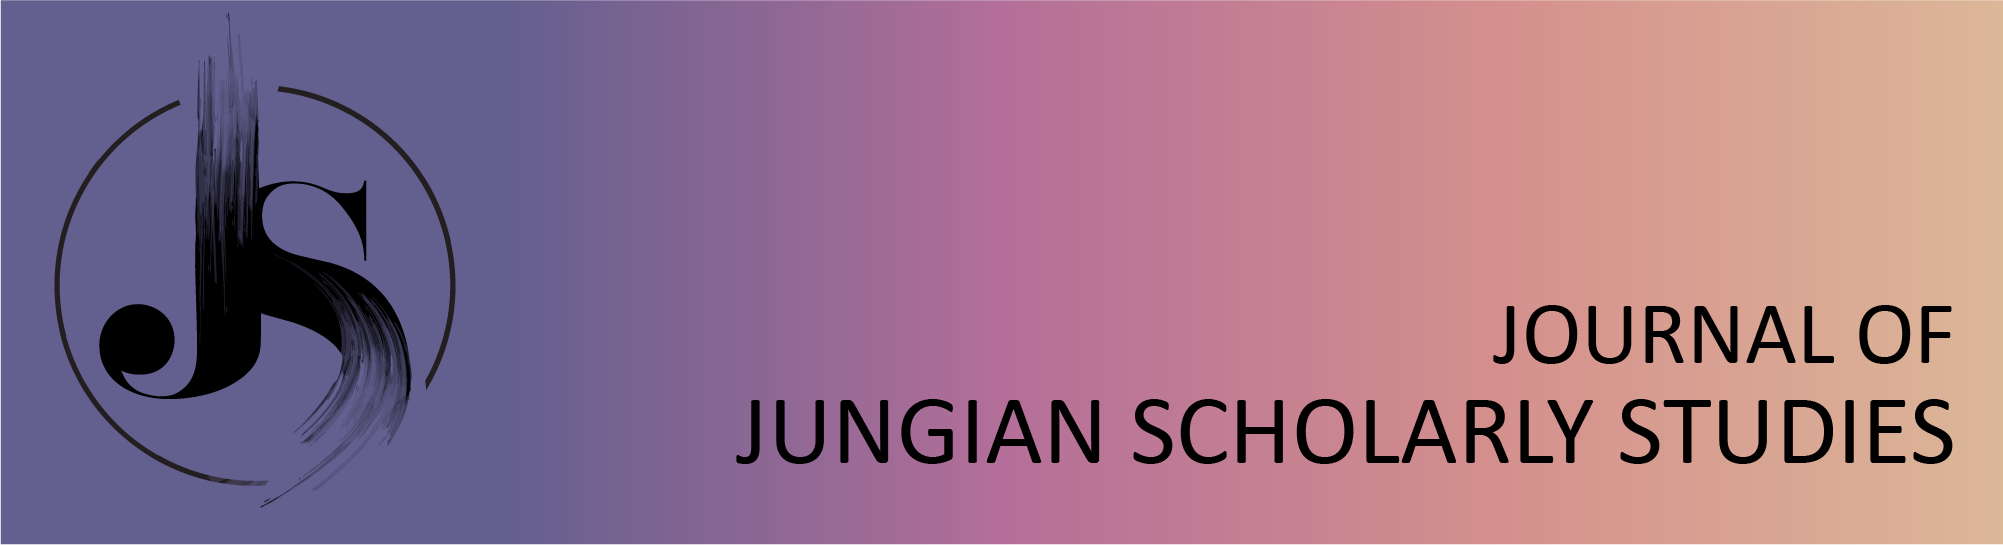 Journal of Jungian Scholarly Studies